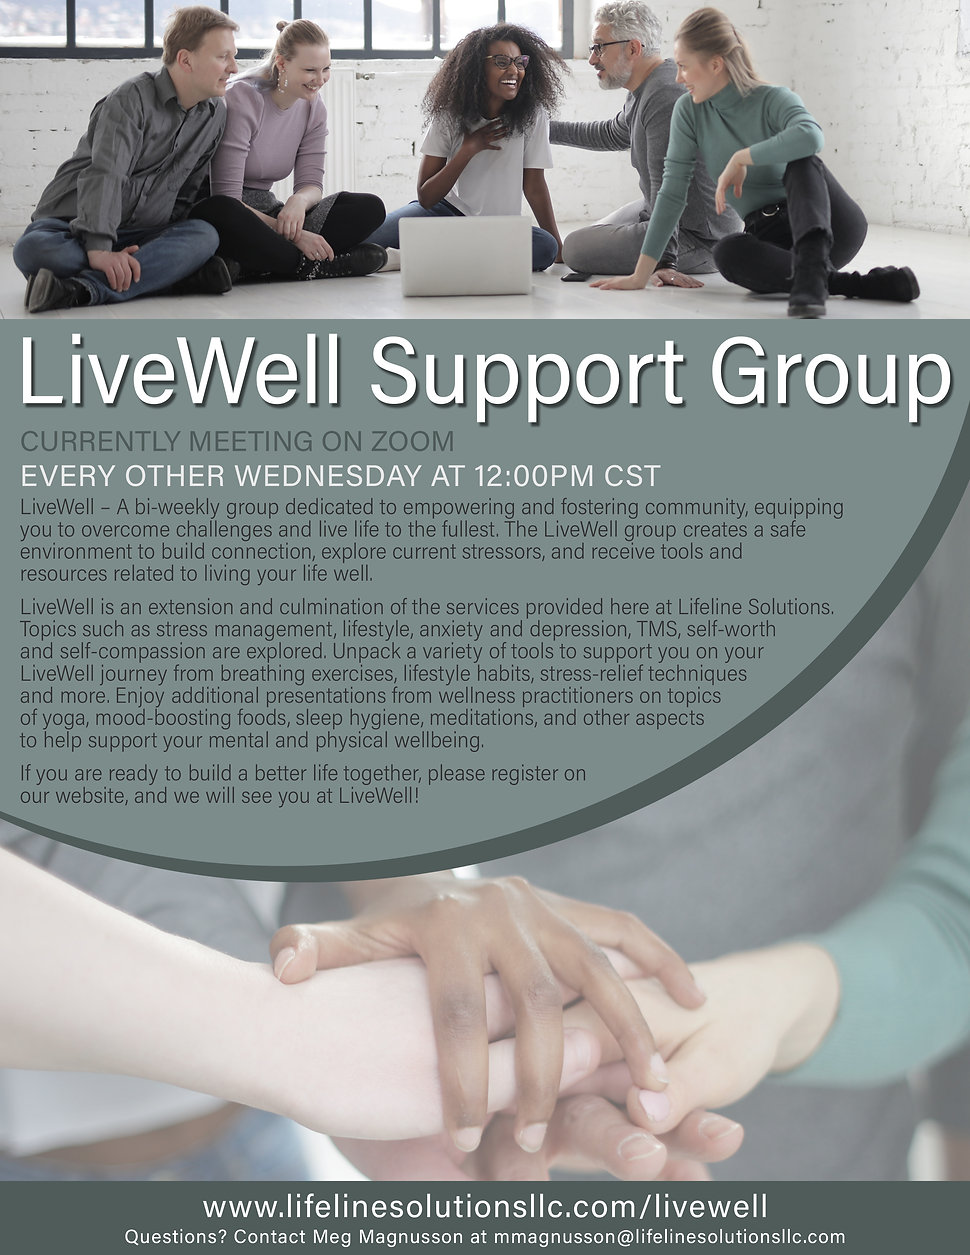 LiveWell Support Group Flyer.jpg